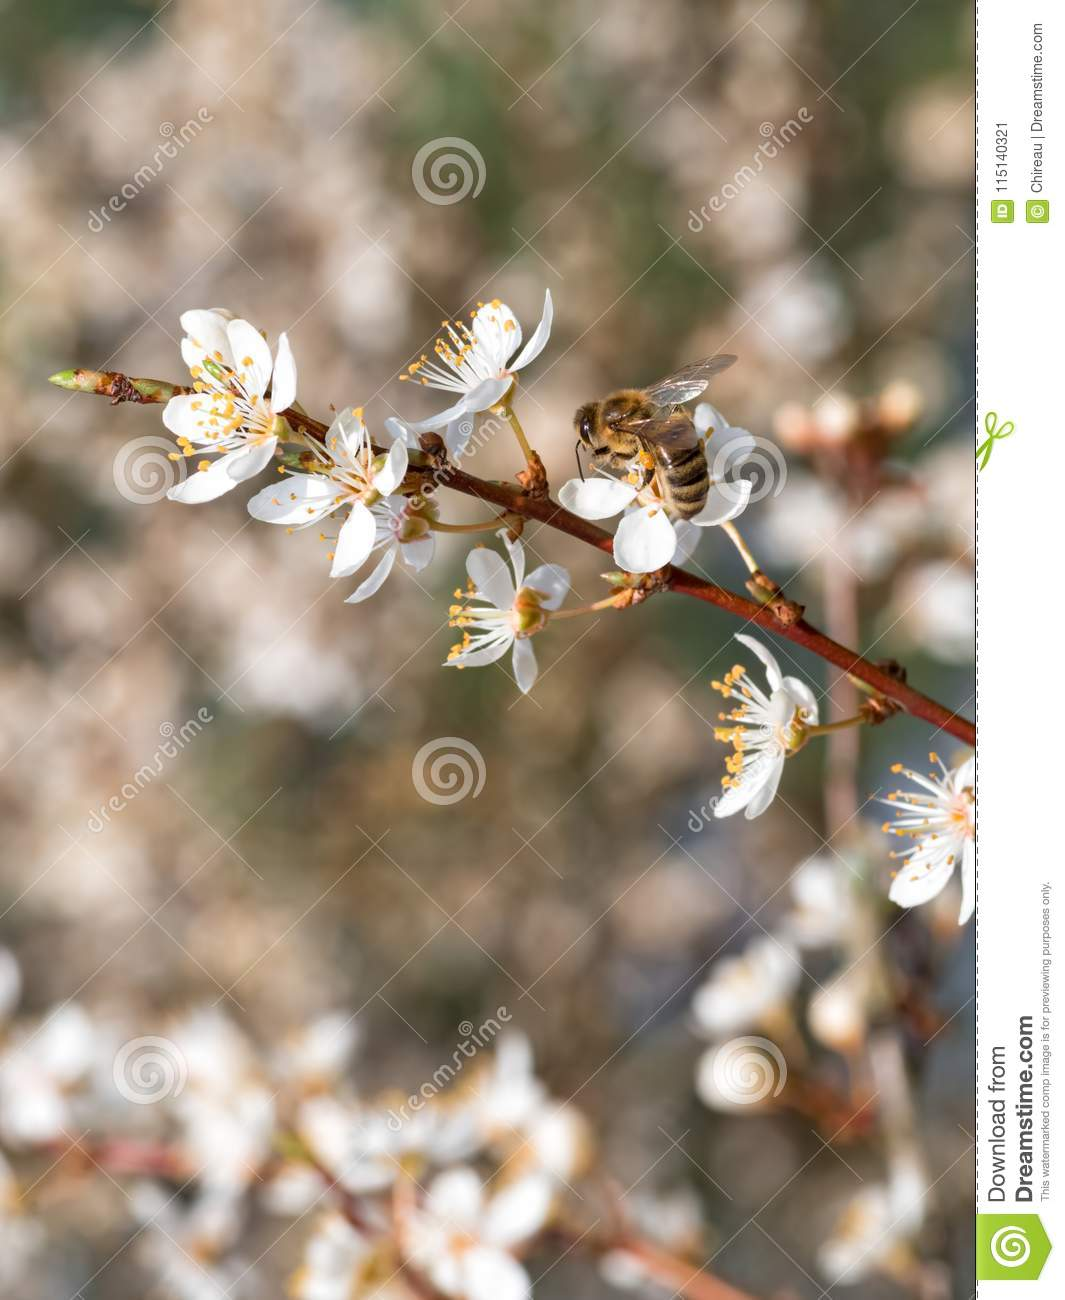 A bee pollinating white fresh flowers on a blooming fruit tree